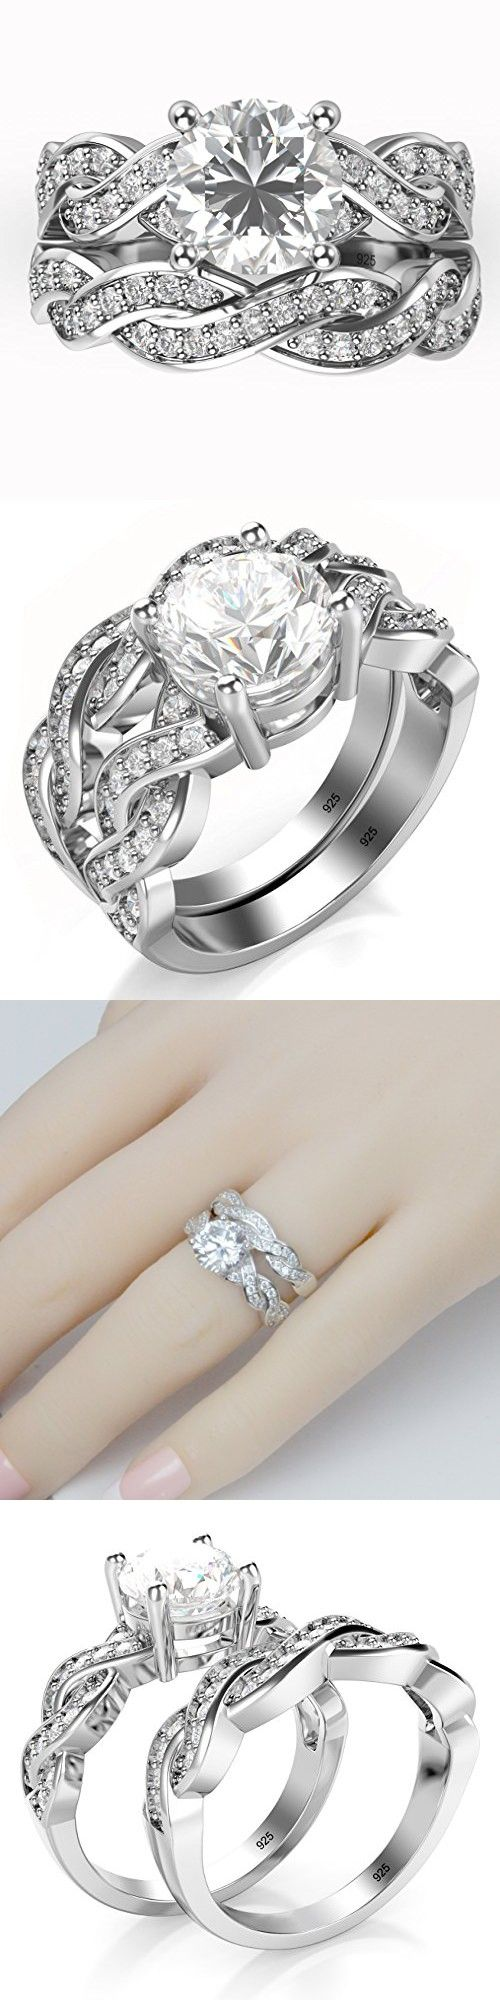 Sz 8 Sterling Silver 925 CZ Cubic Zirconia Infinity Wedding Engagement Ring Set